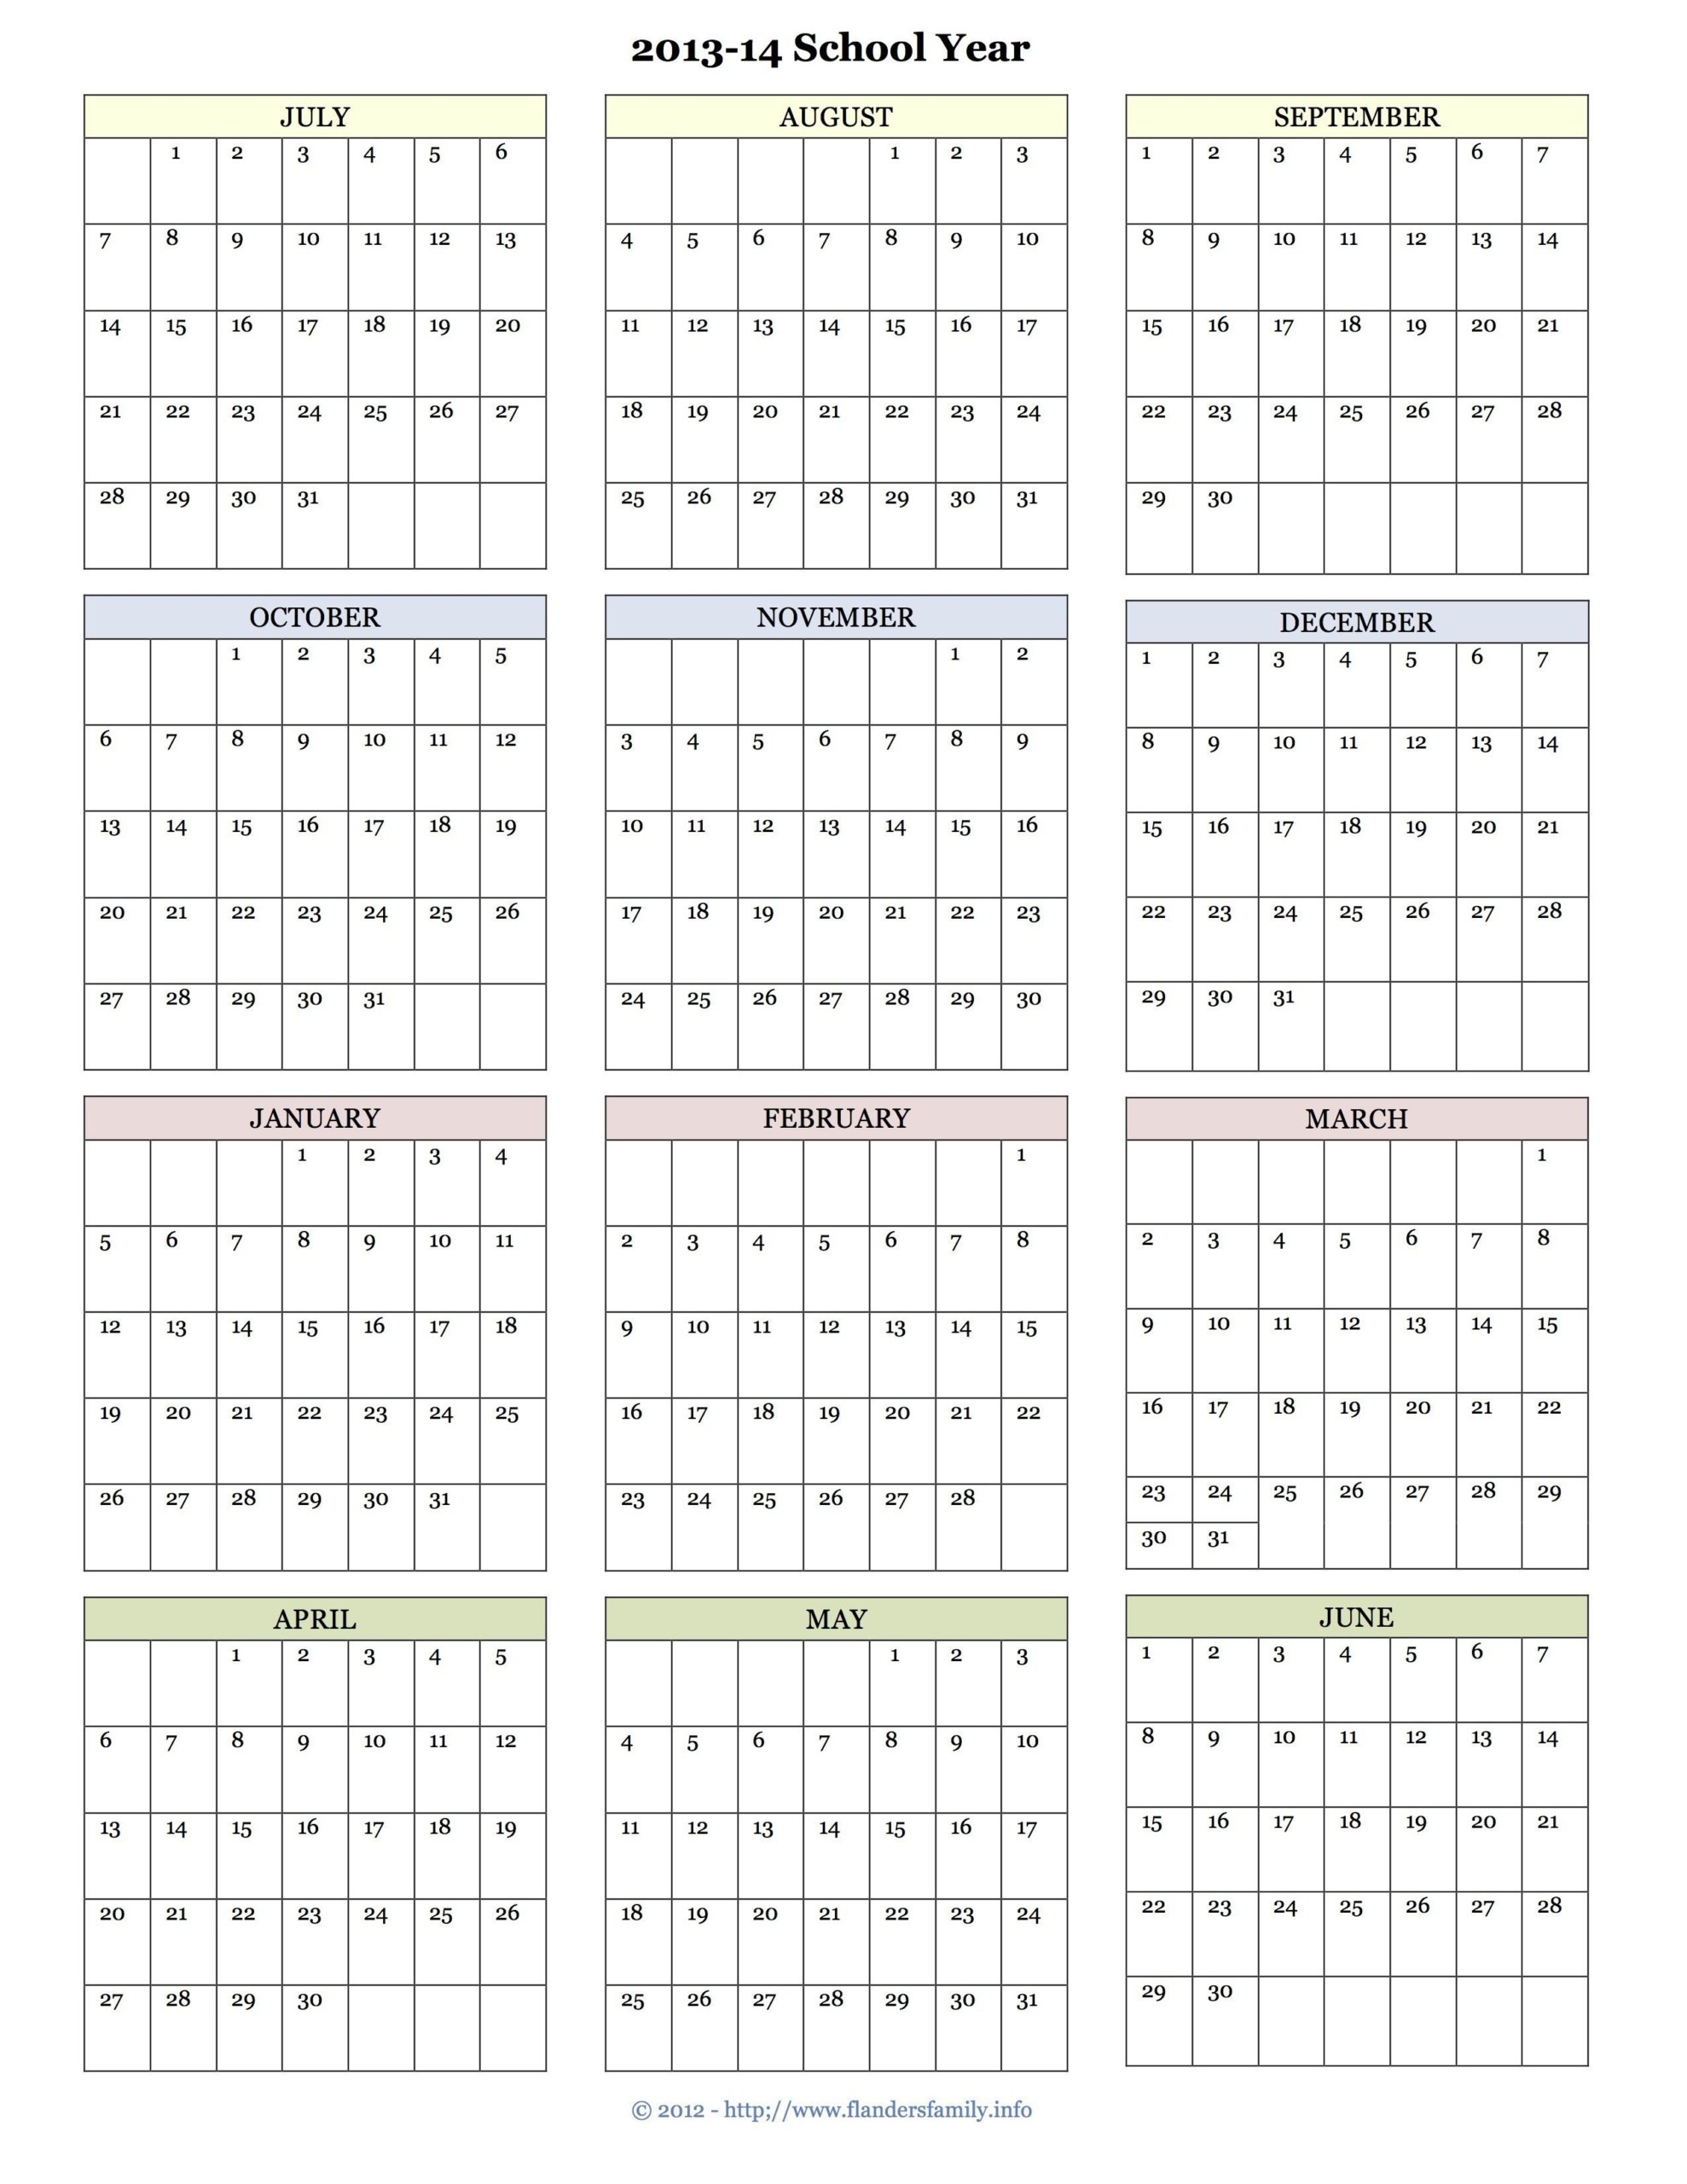 Printable Academic Calendar The Flanders Family Website